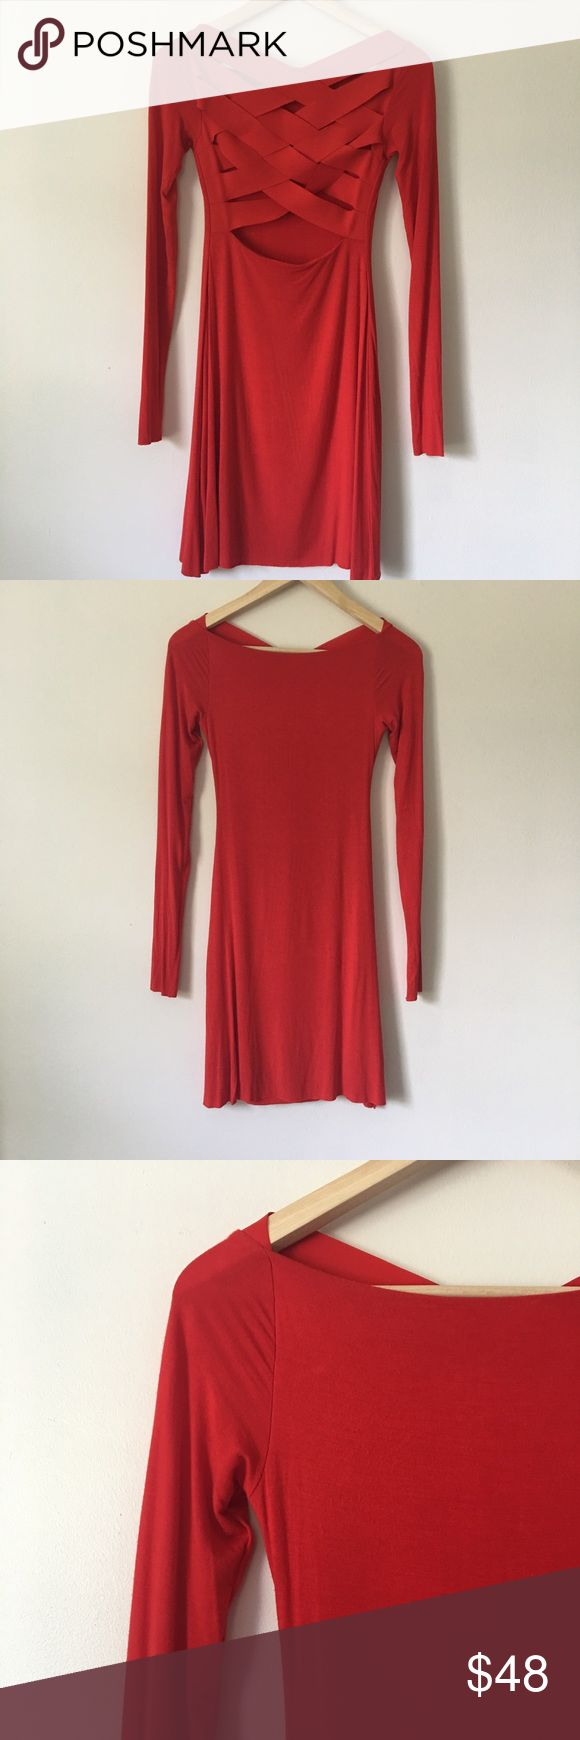 Bailey44 Red Dress Great red dress by Bailey44! Sext bandage cutout detail at back. Long sleeve. Lined. Slight fuzzies as pictured, which is typical with this material, overall in great condition! Make an offer! 🎉 Anthropologie Dresses